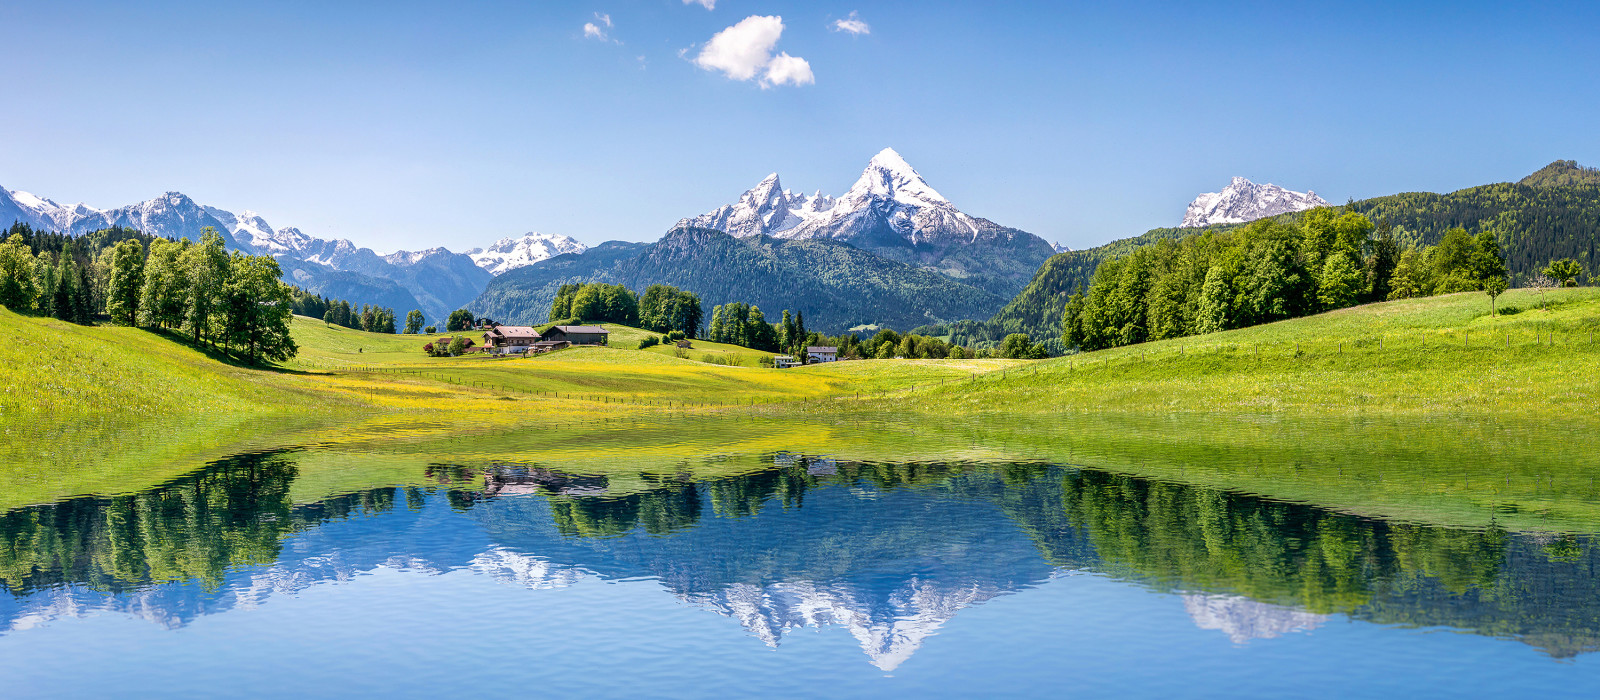 Best time to visit European Capitals - Idyllic summer landscape with clear mountain lake in the Alps - European Cities tours